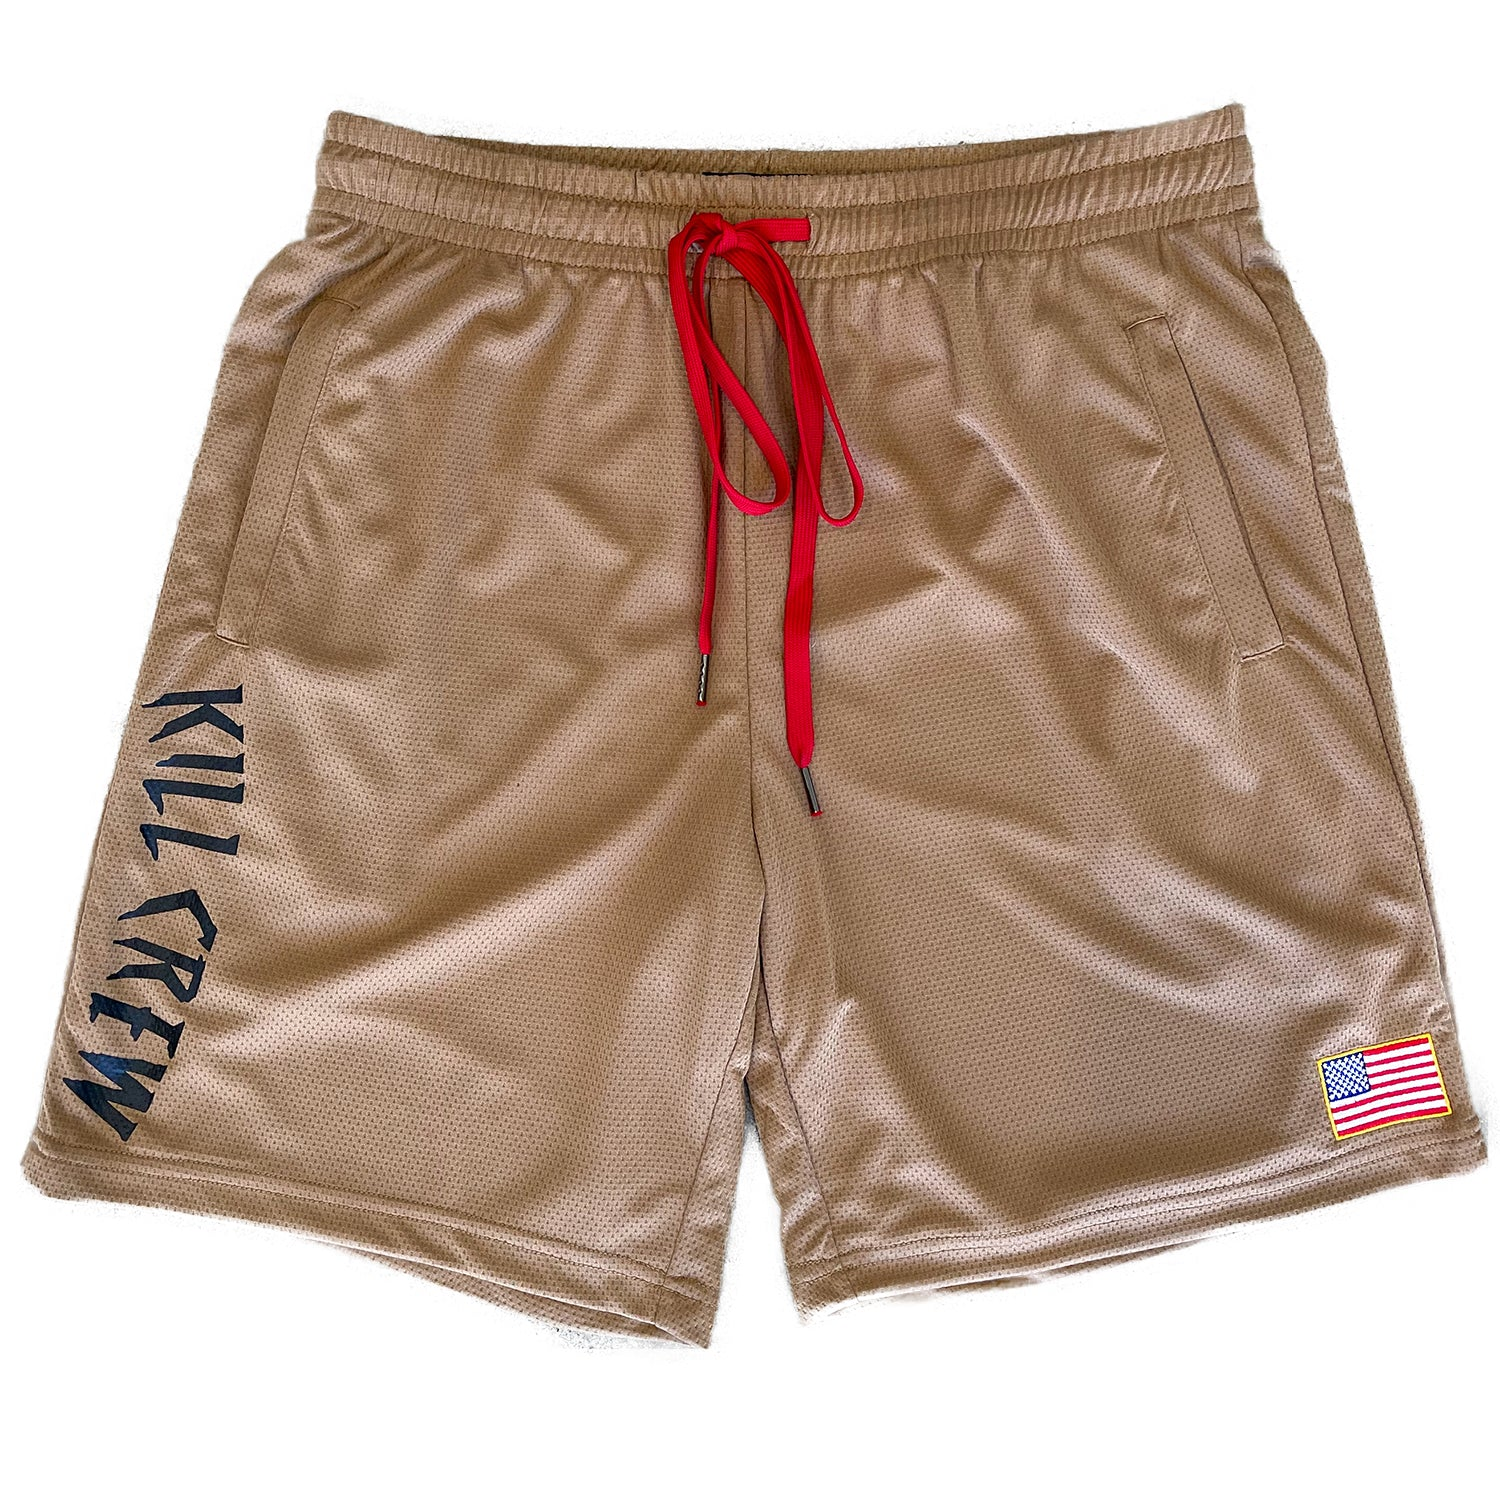 EMBROIDERED FLAG SHORTS - SAND